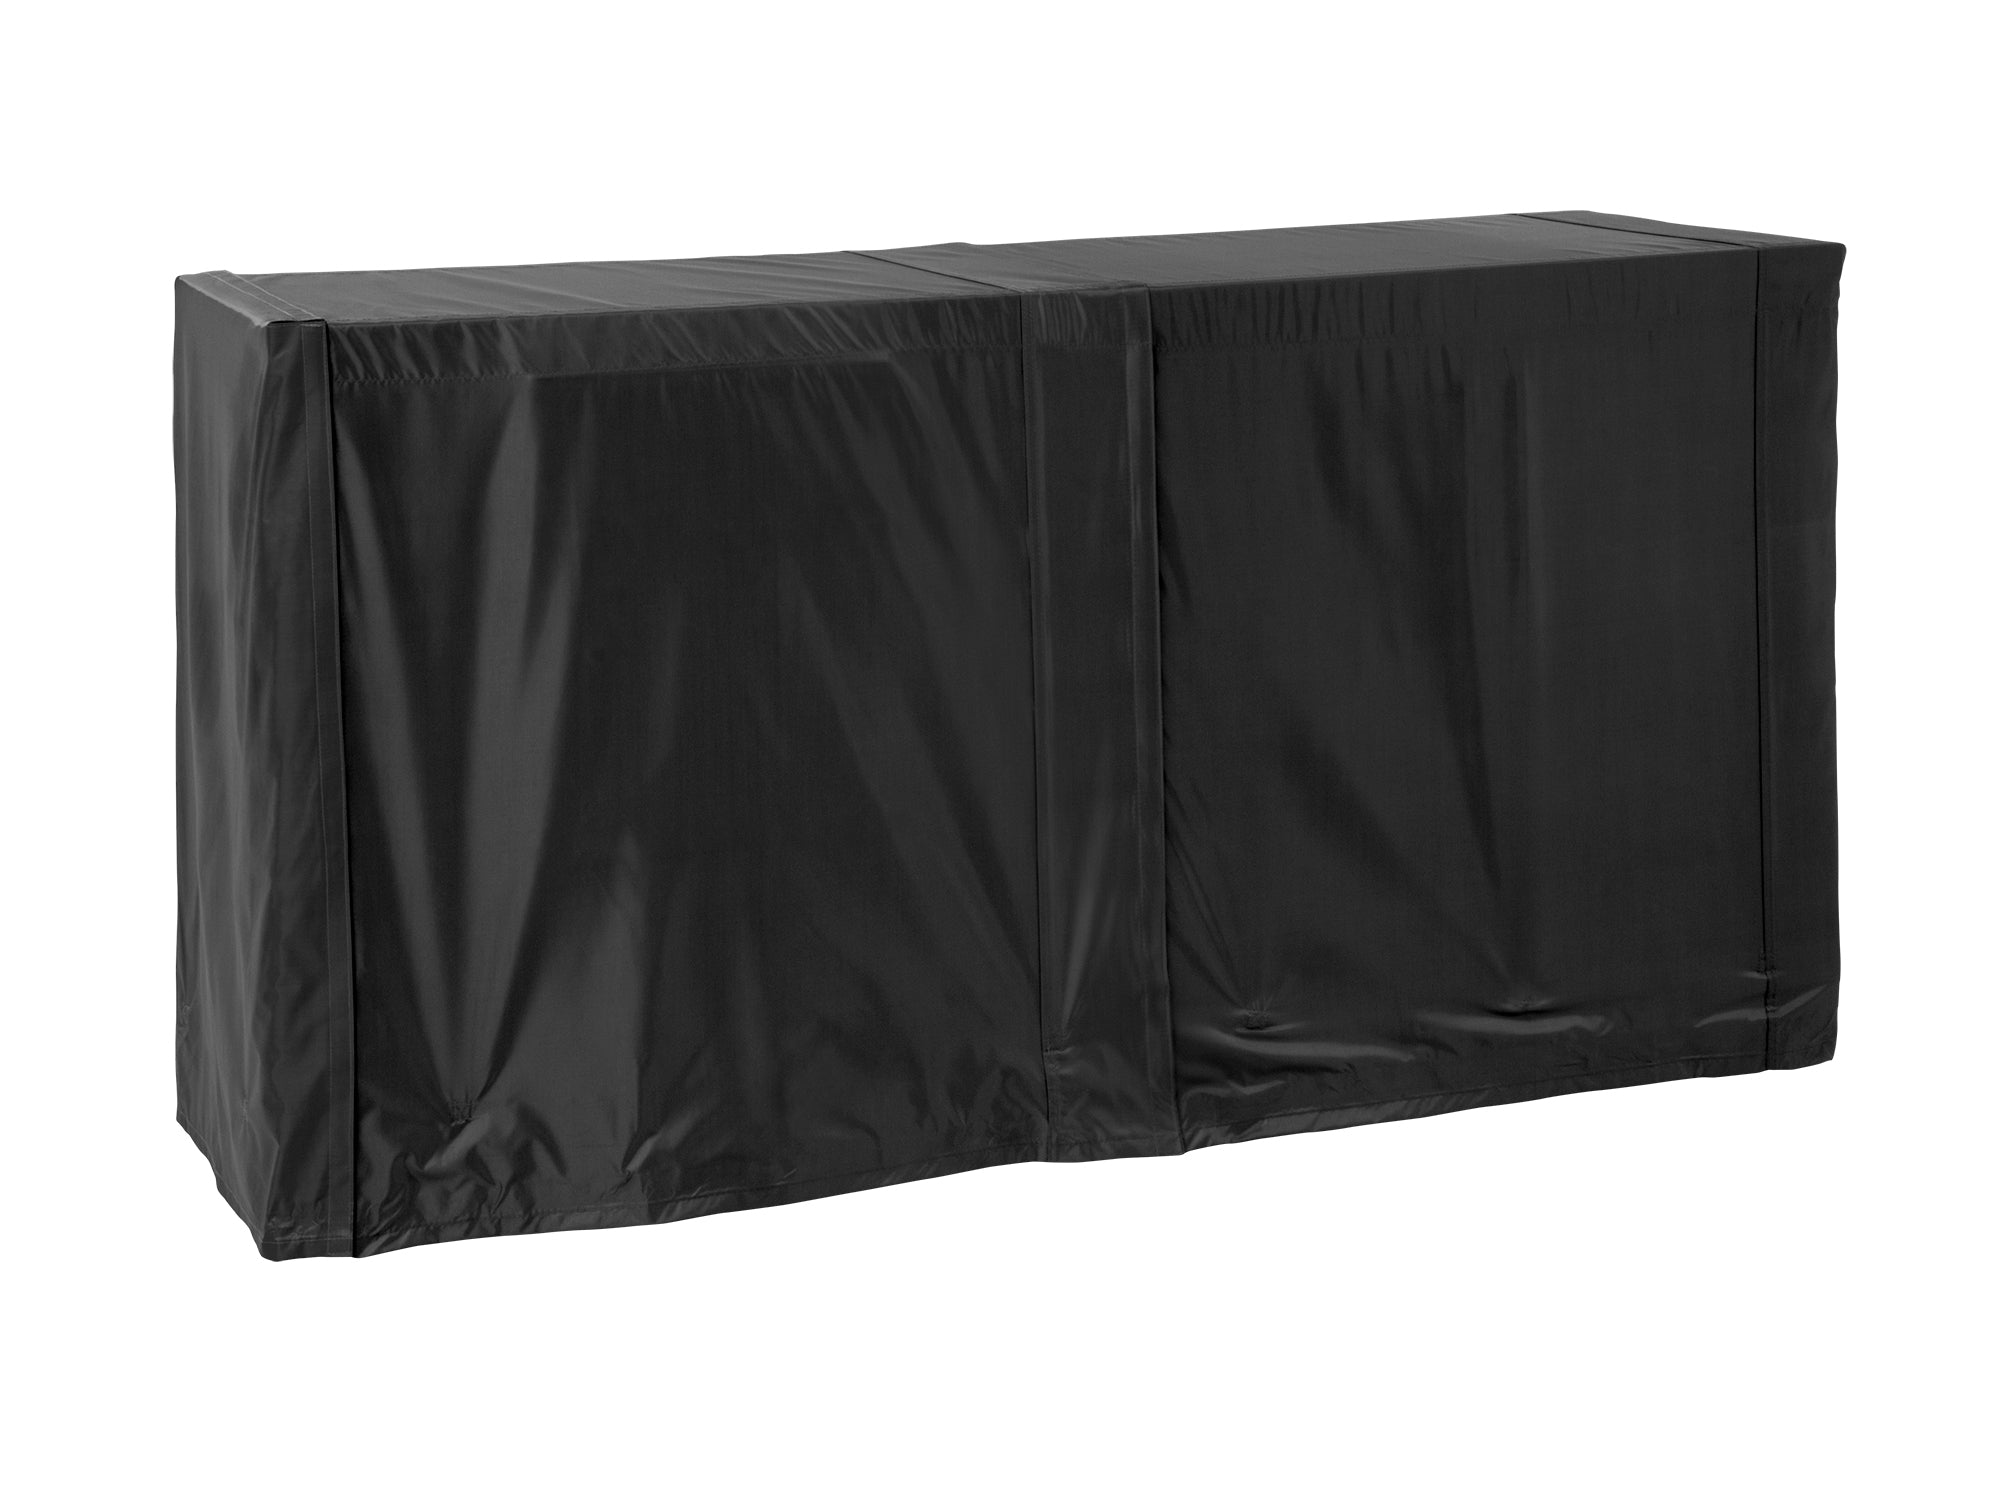 Outdoor Kitchen All-Season Cover Bundle: 32 in. Cover, 88 in. Cover, Right/Left Side Panel Covers